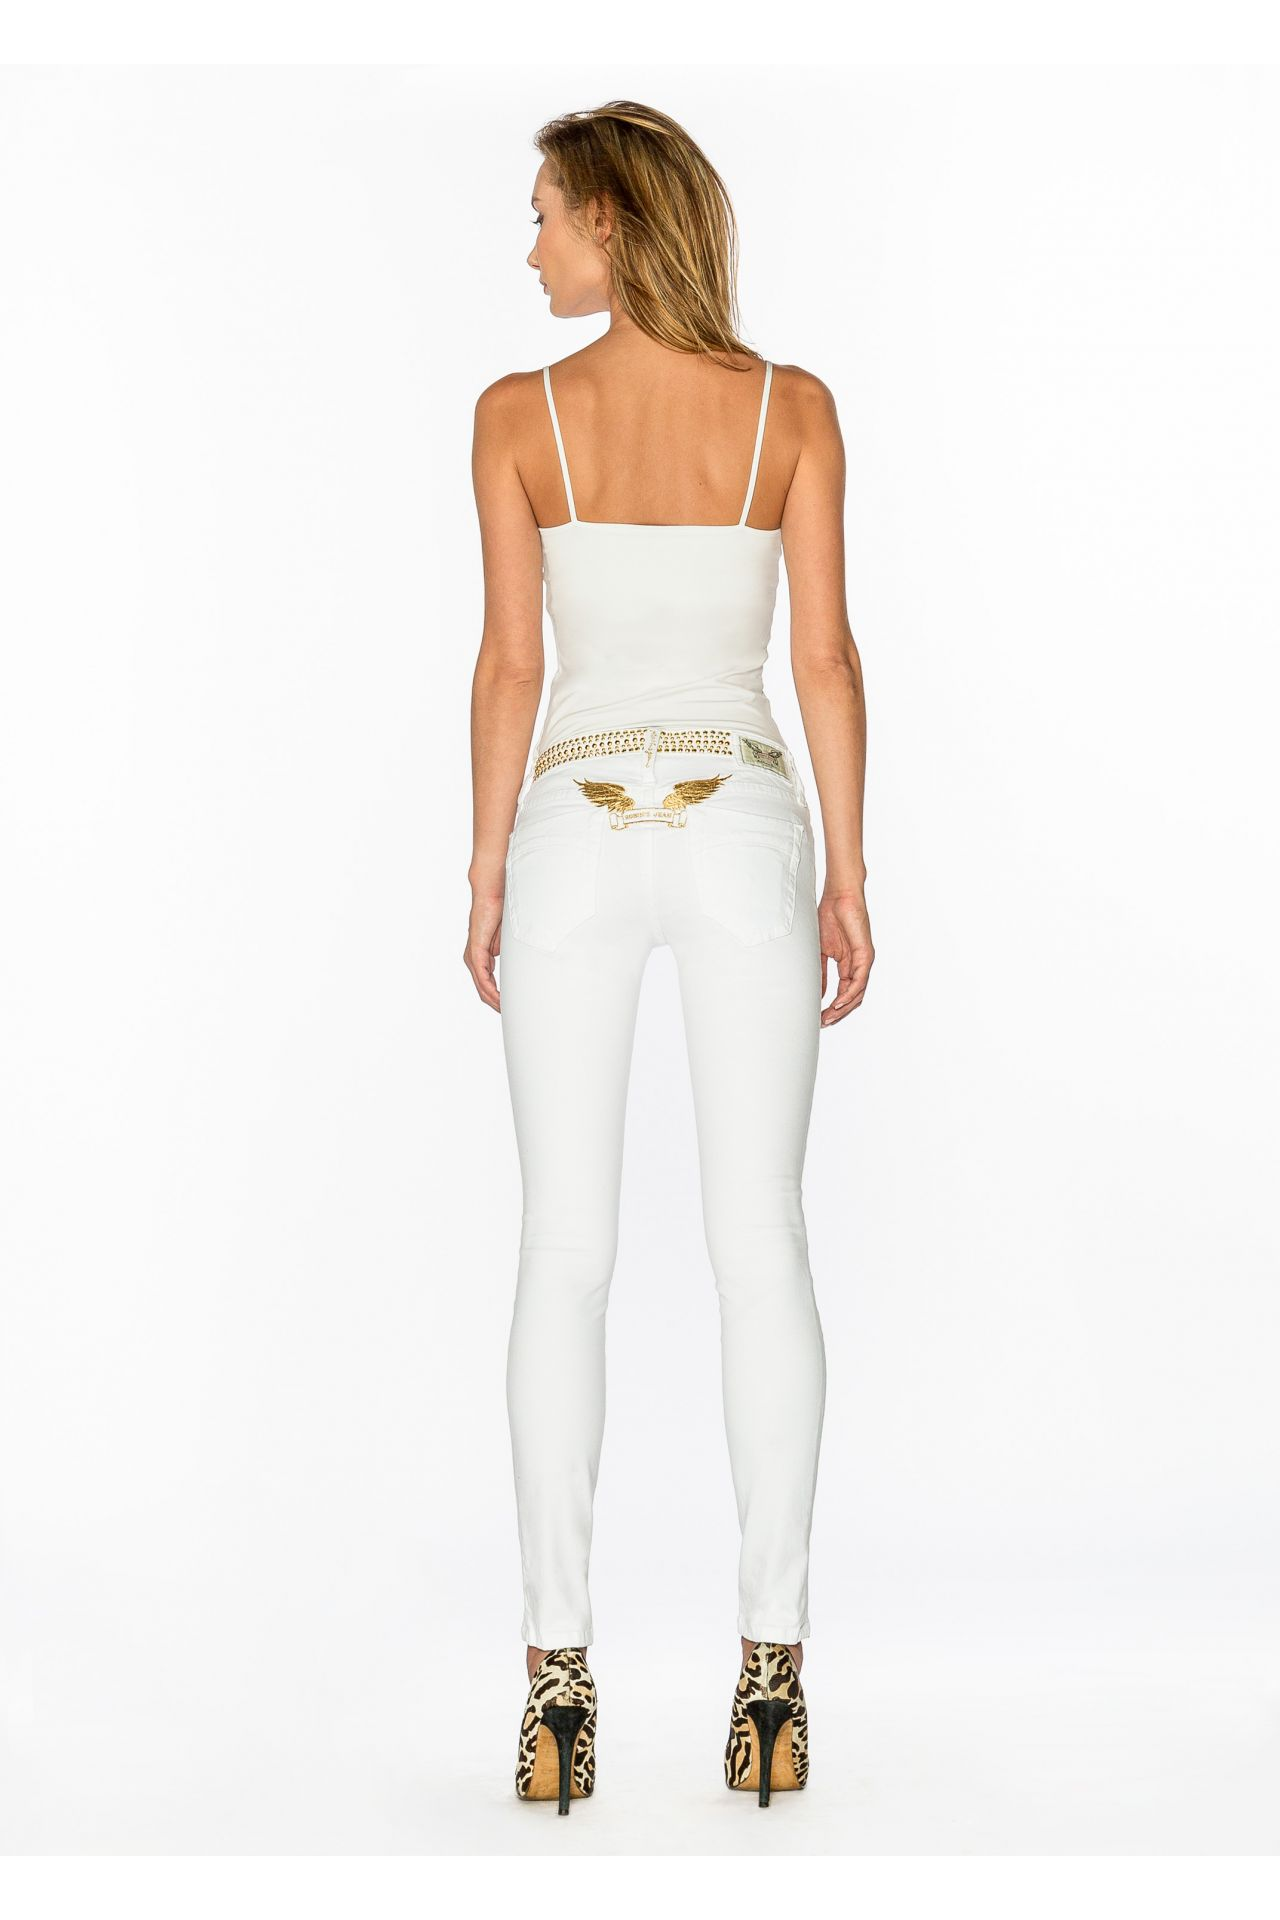 LOW RISE SKINNY WITH GOLD IN WHITE